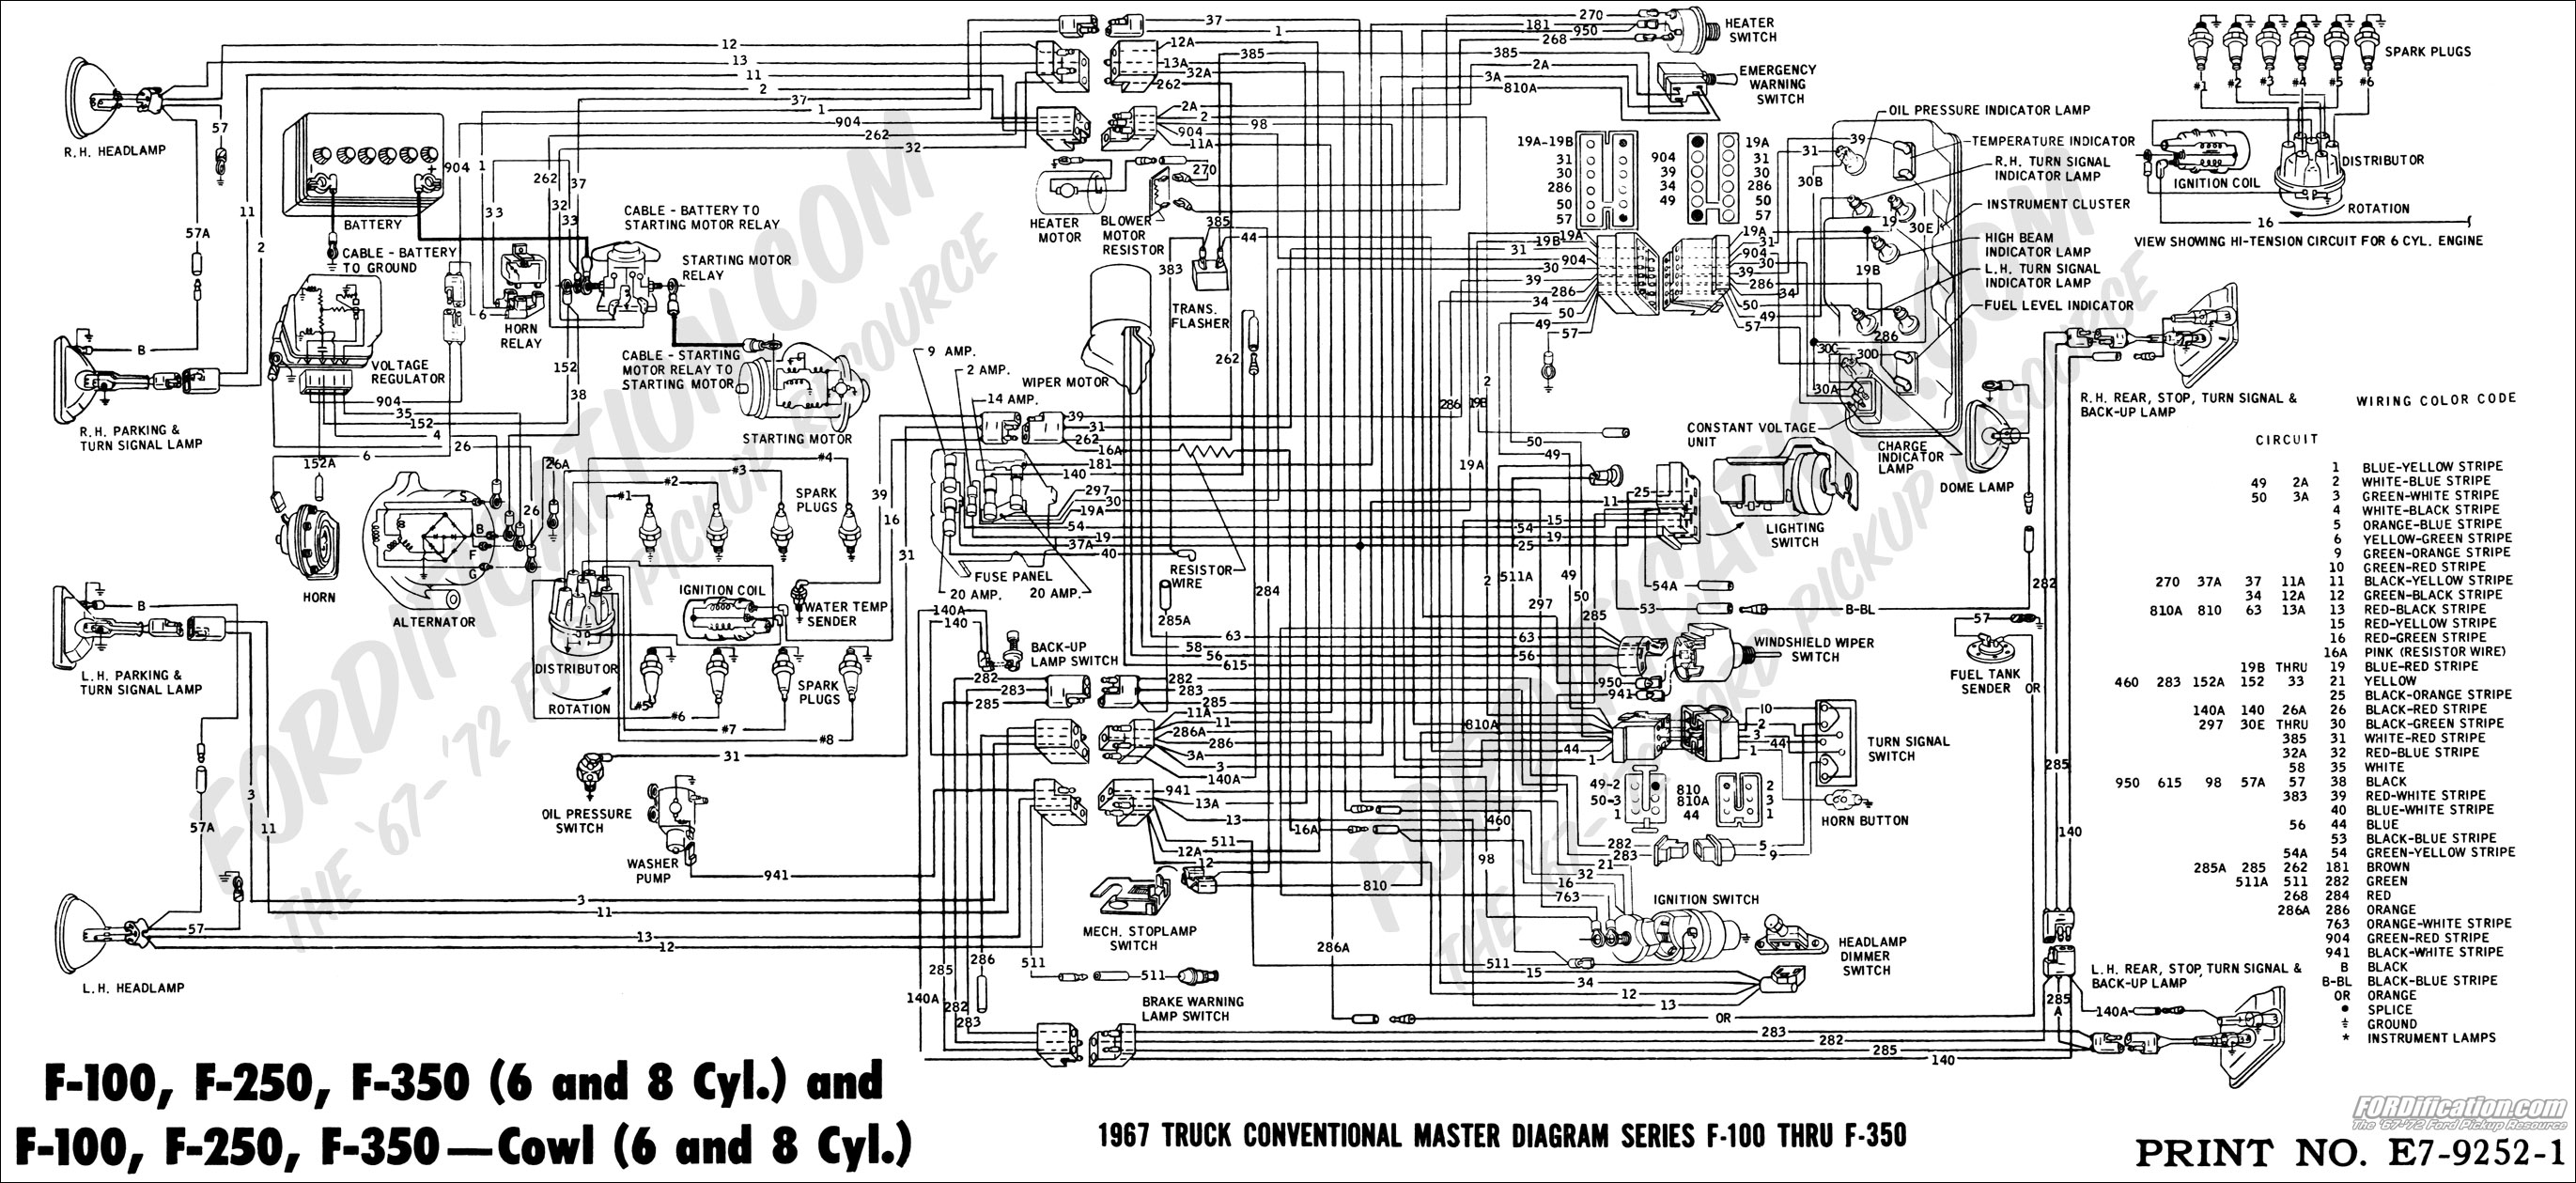 Schematics h on 2000 cougar fuse panel